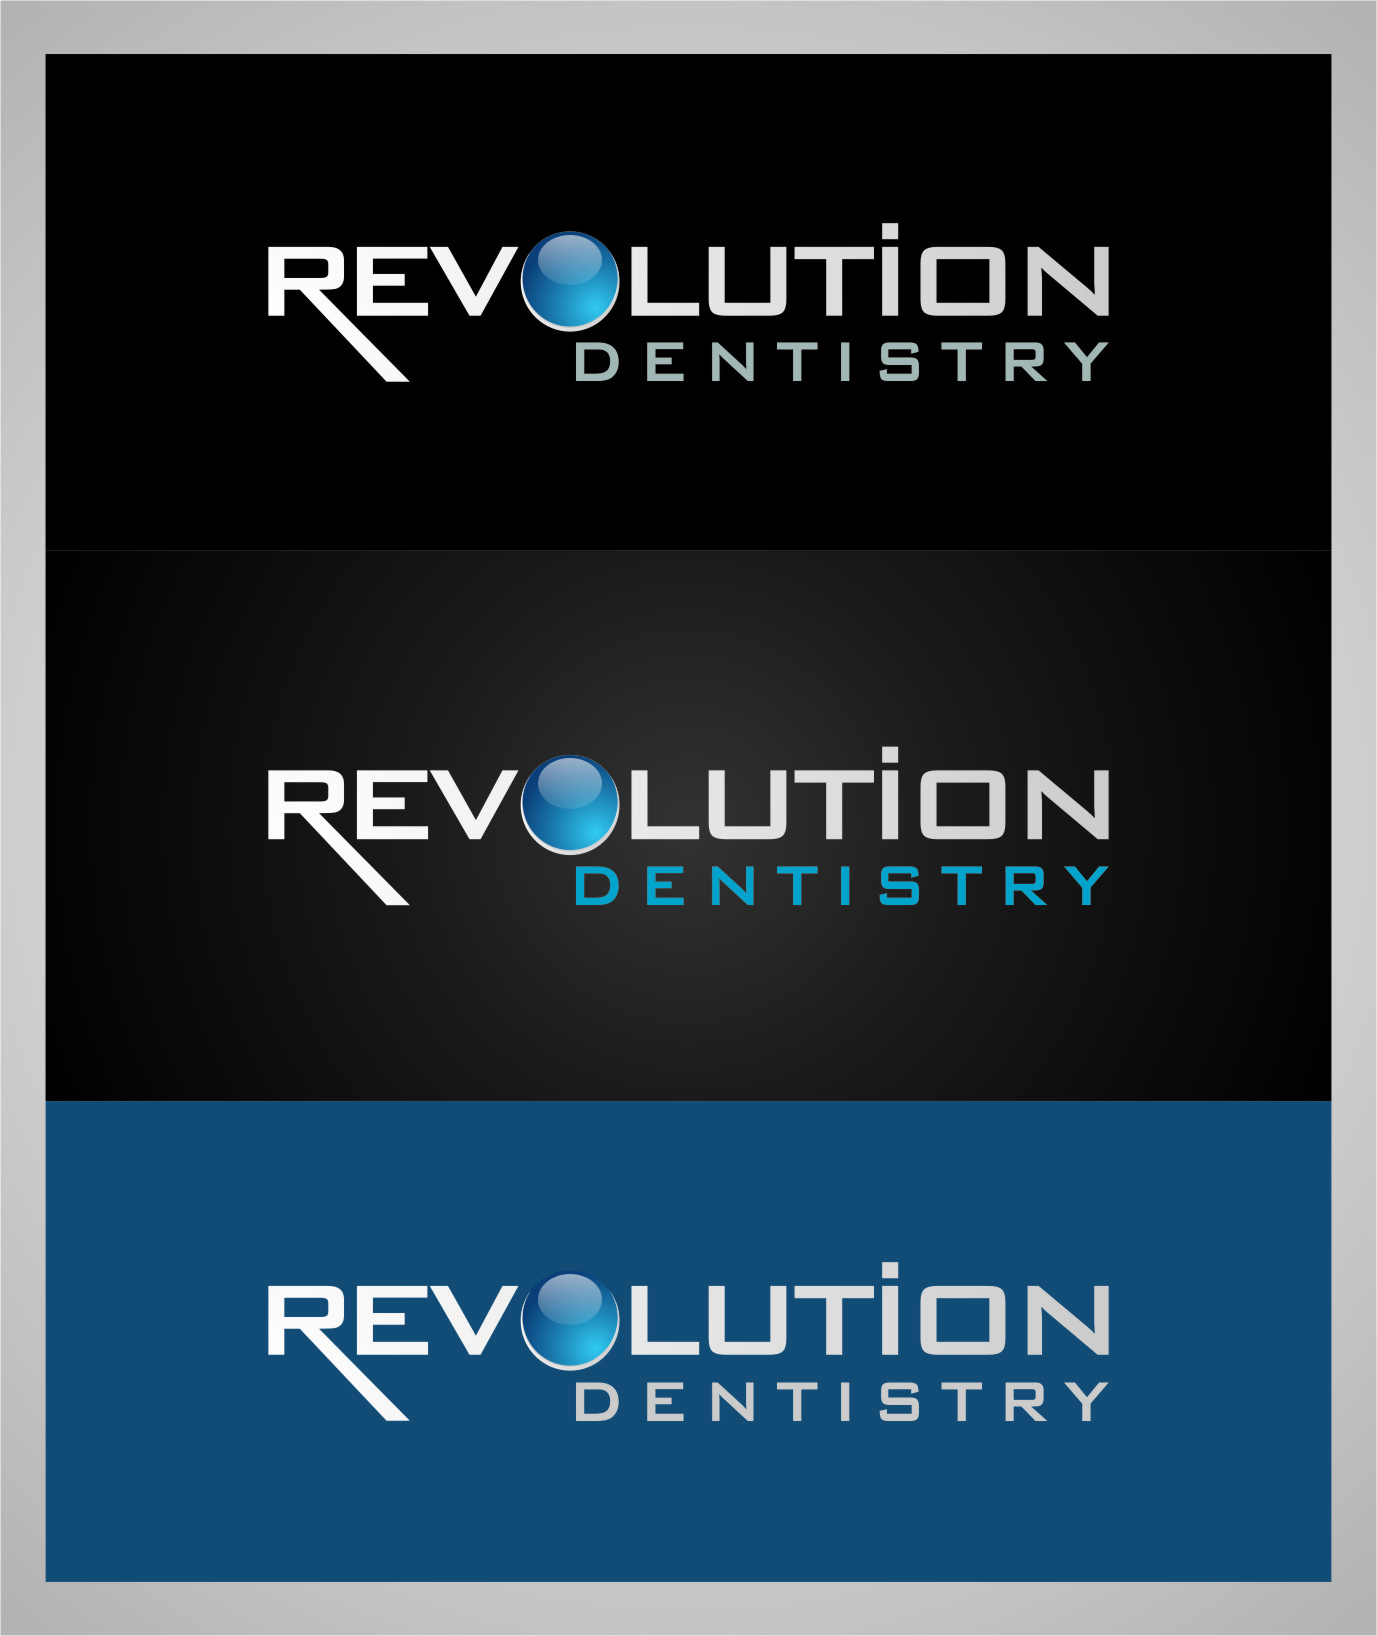 Logo Design by Ngepet_art - Entry No. 272 in the Logo Design Contest Artistic Logo Design for Revolution Dentistry.